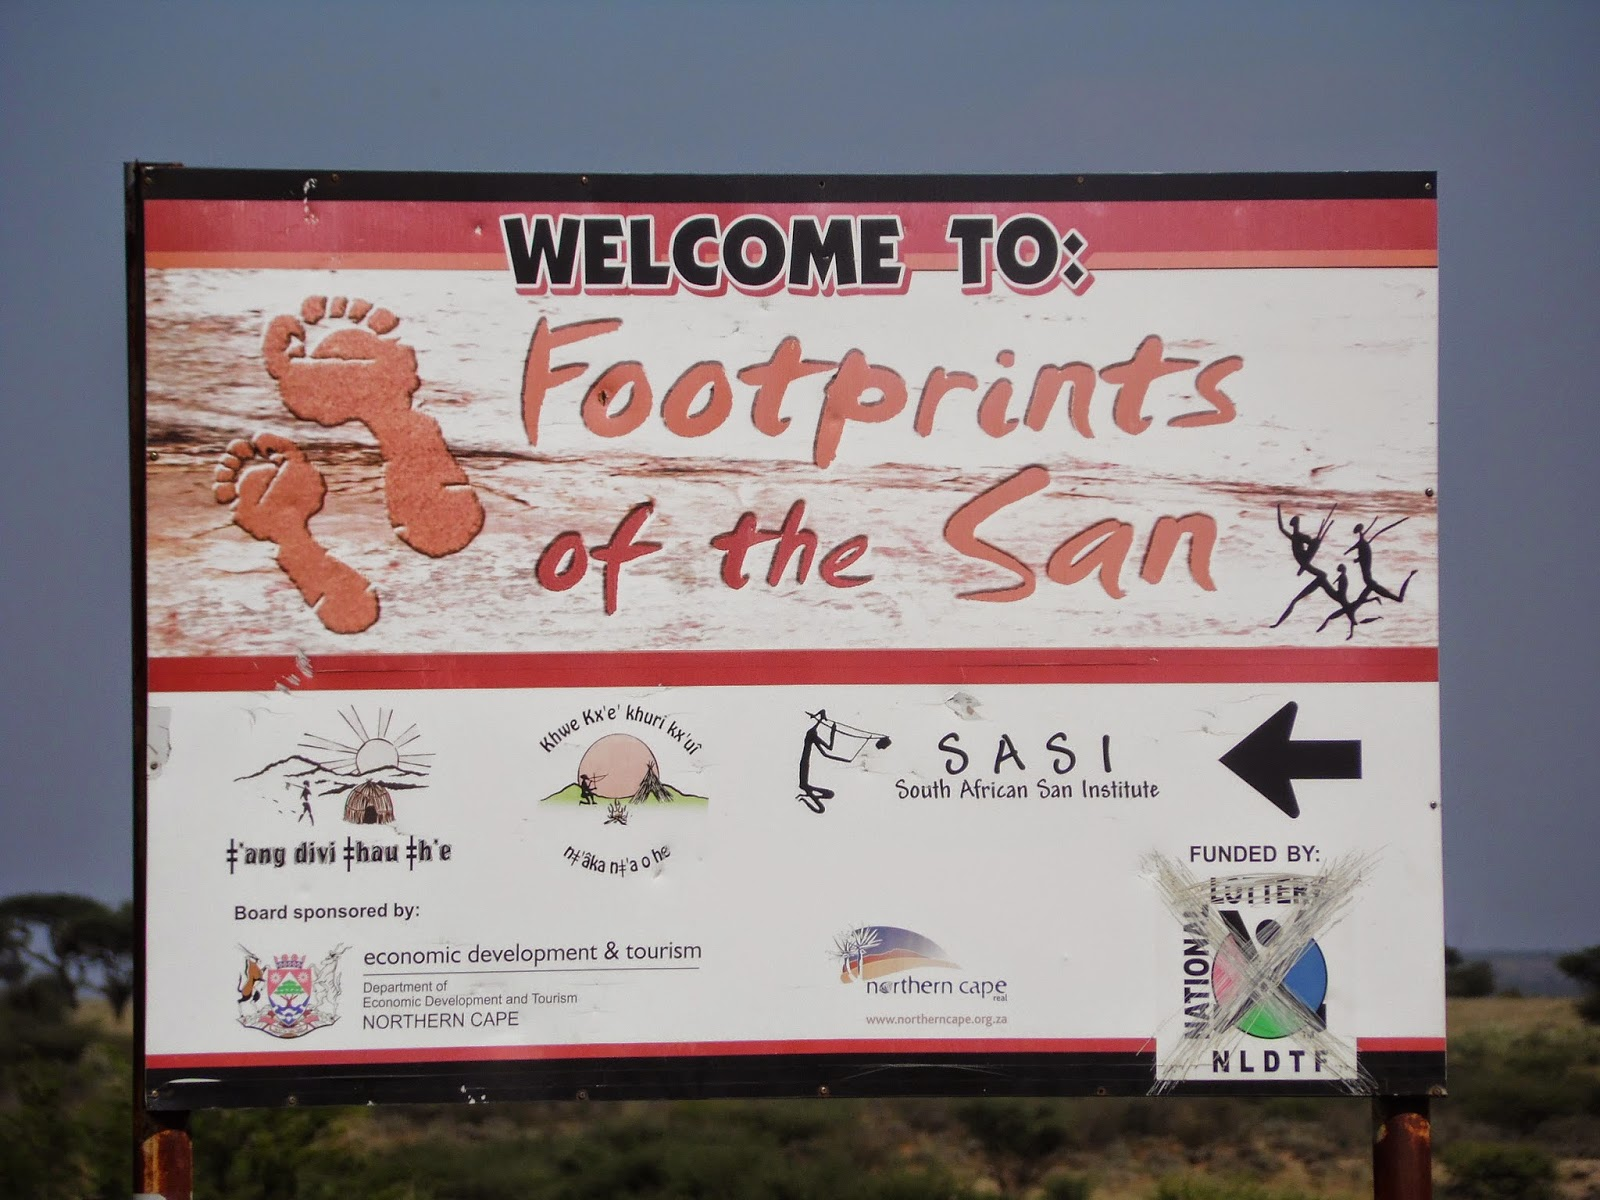 spectacle african footprints